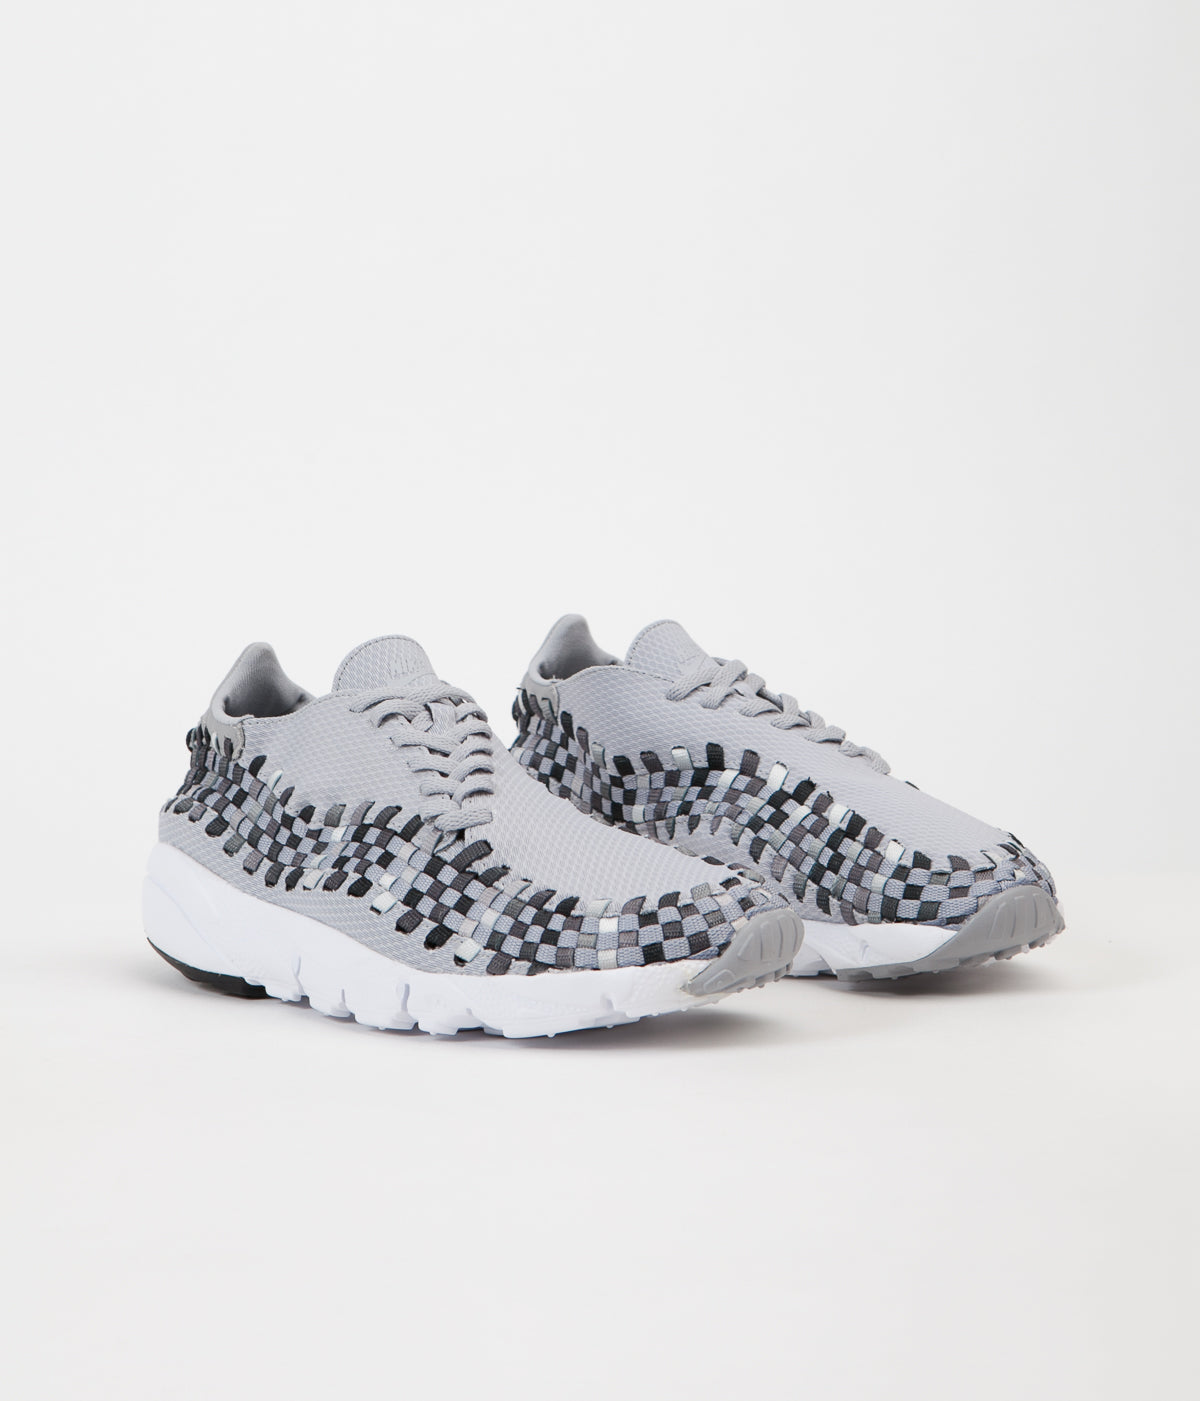 official photos 1af33 8a9dc ... Nike Air Footscape Woven NM Shoes - Wolf Grey   Black - Dark Grey -  White ...